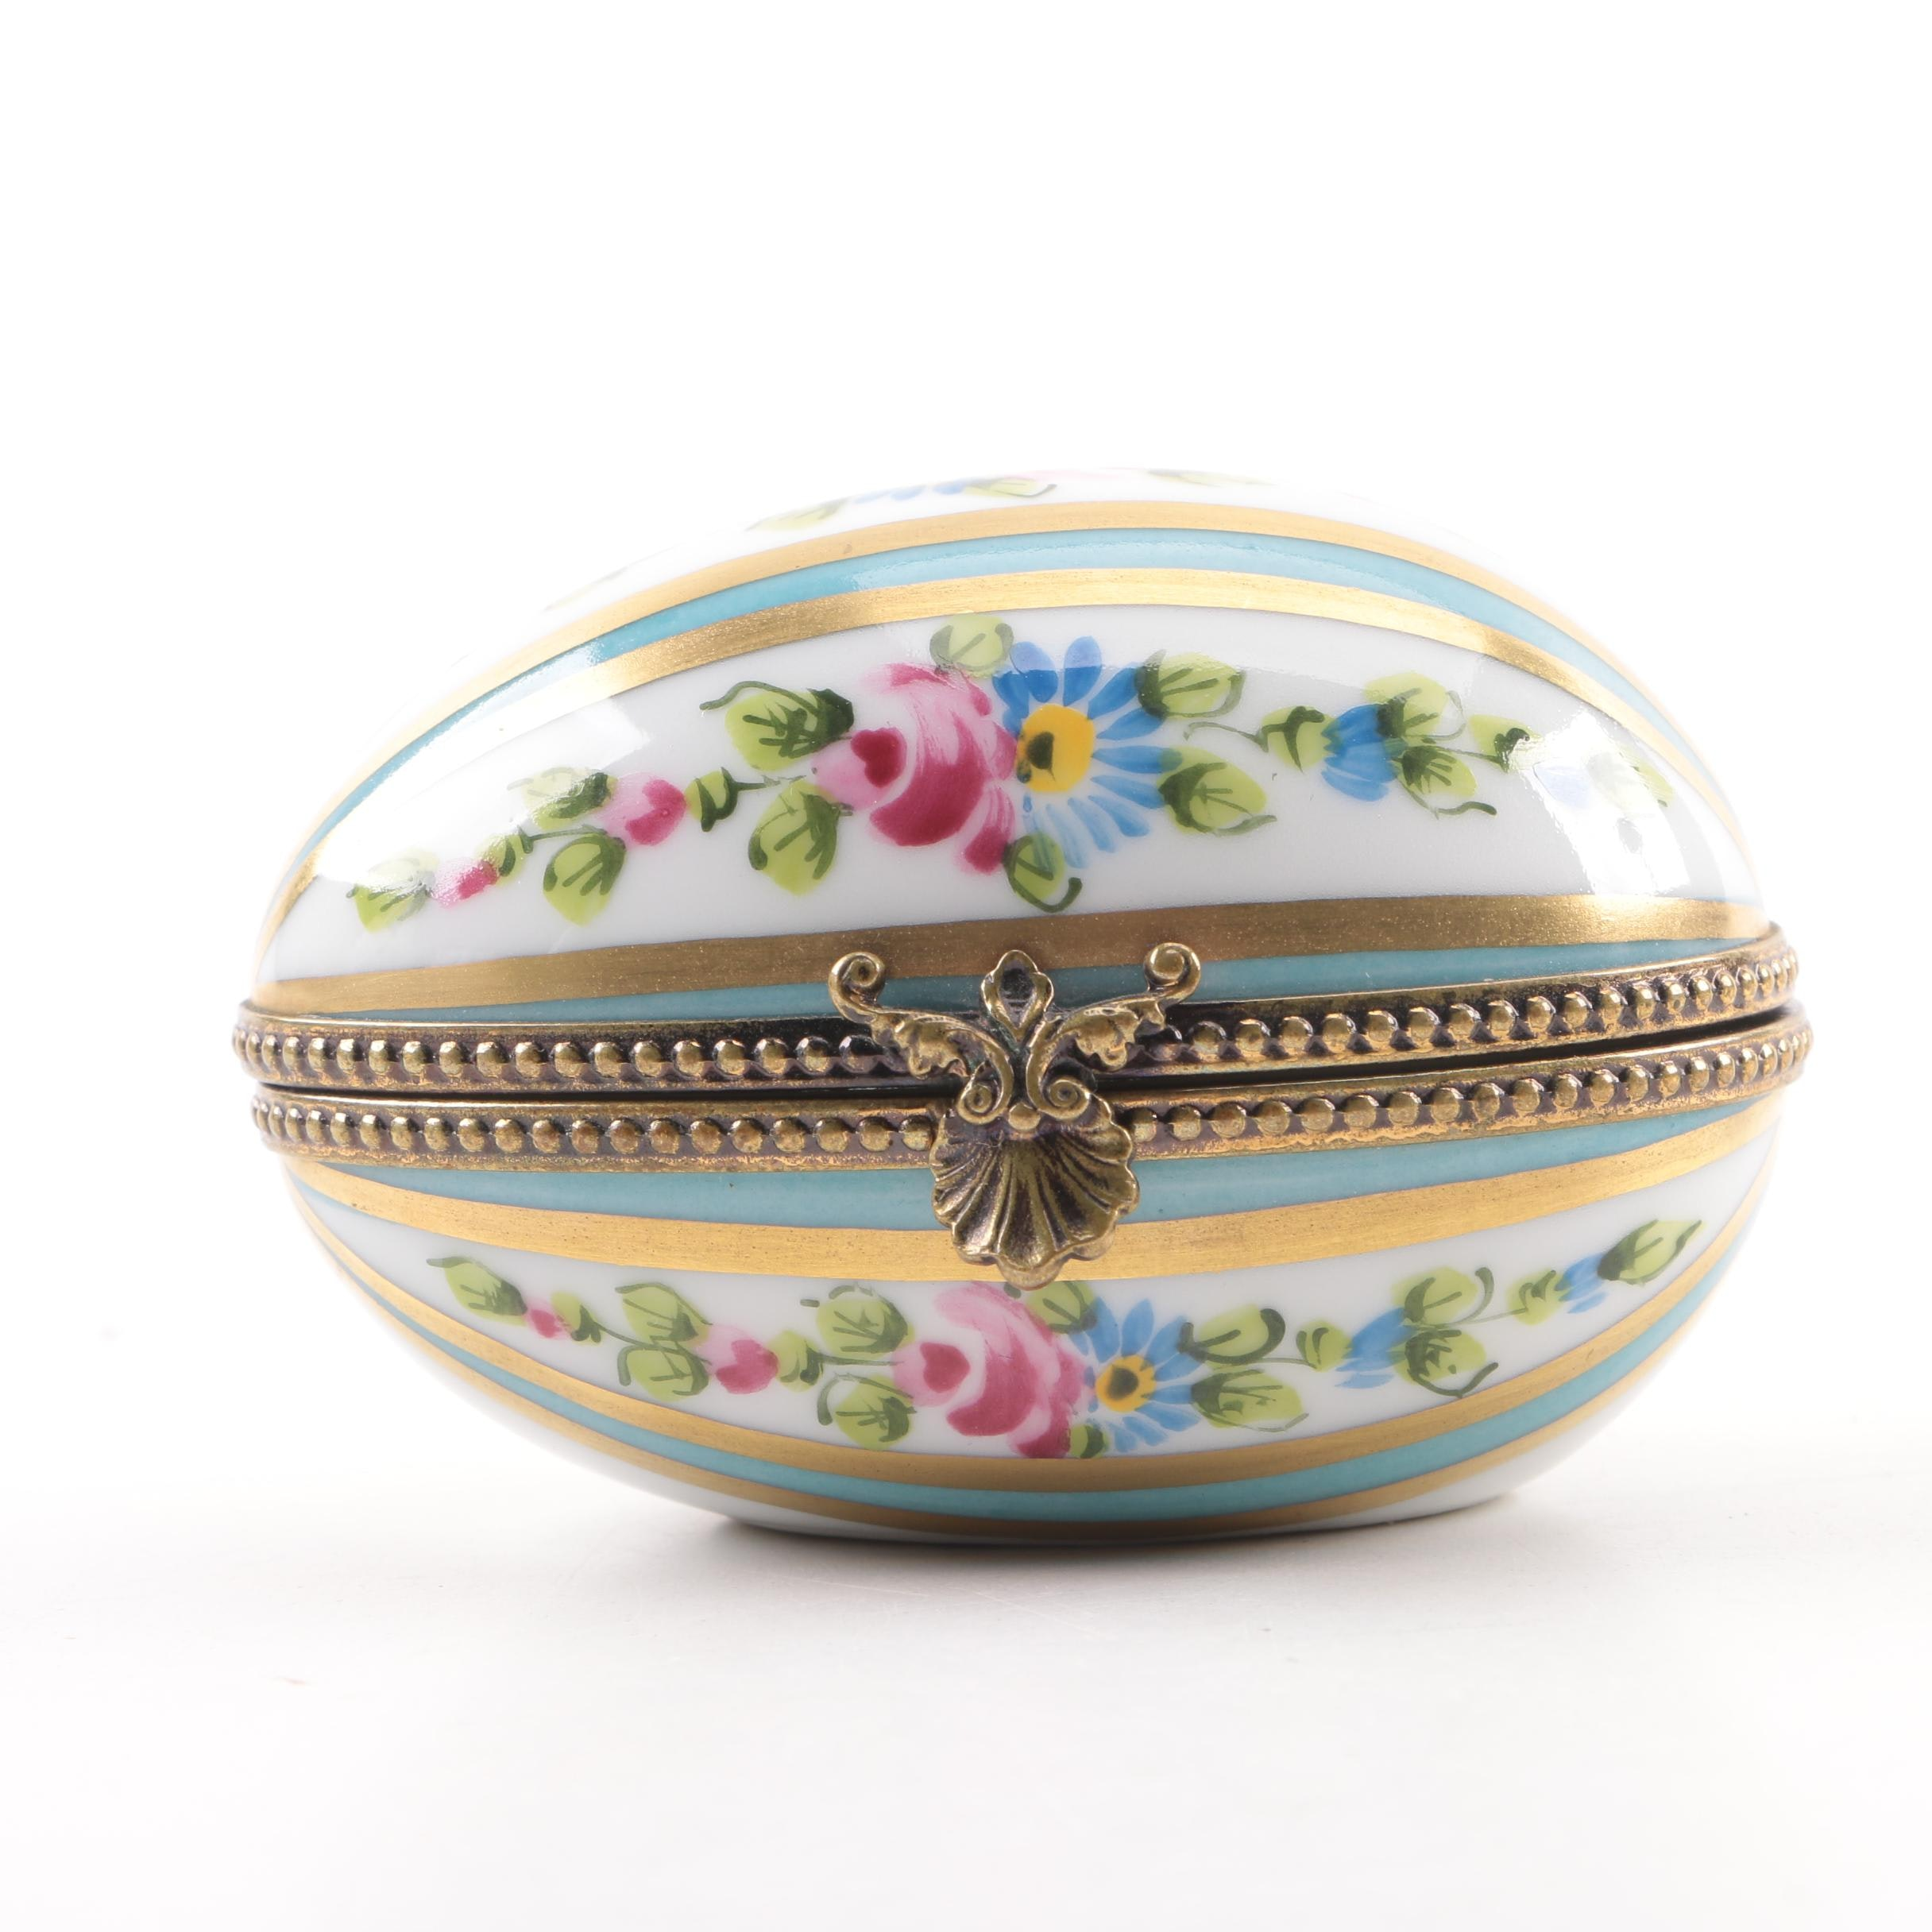 Chamart Limoges Porcelain Egg Shaped Trinket Box